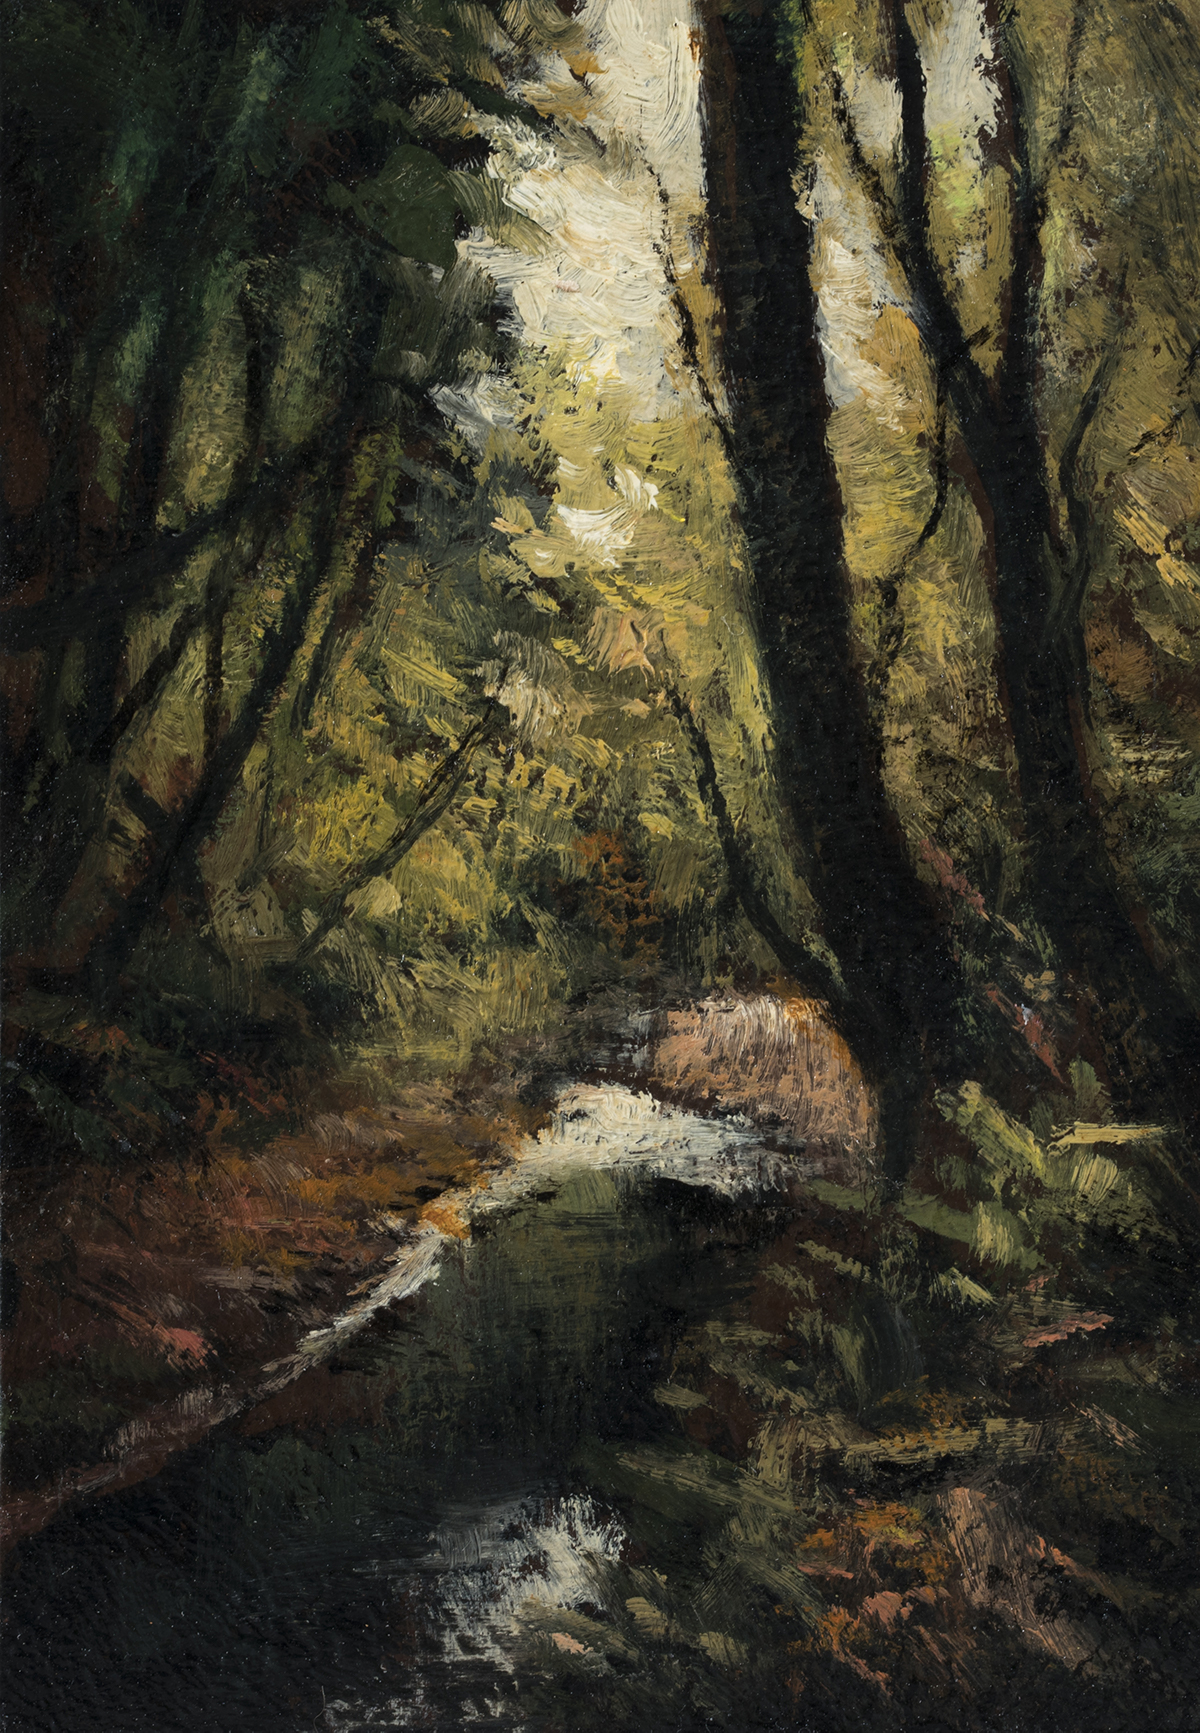 Forest Stream by M Francis McCarthy - 3½x5 Oil on Wood Panel